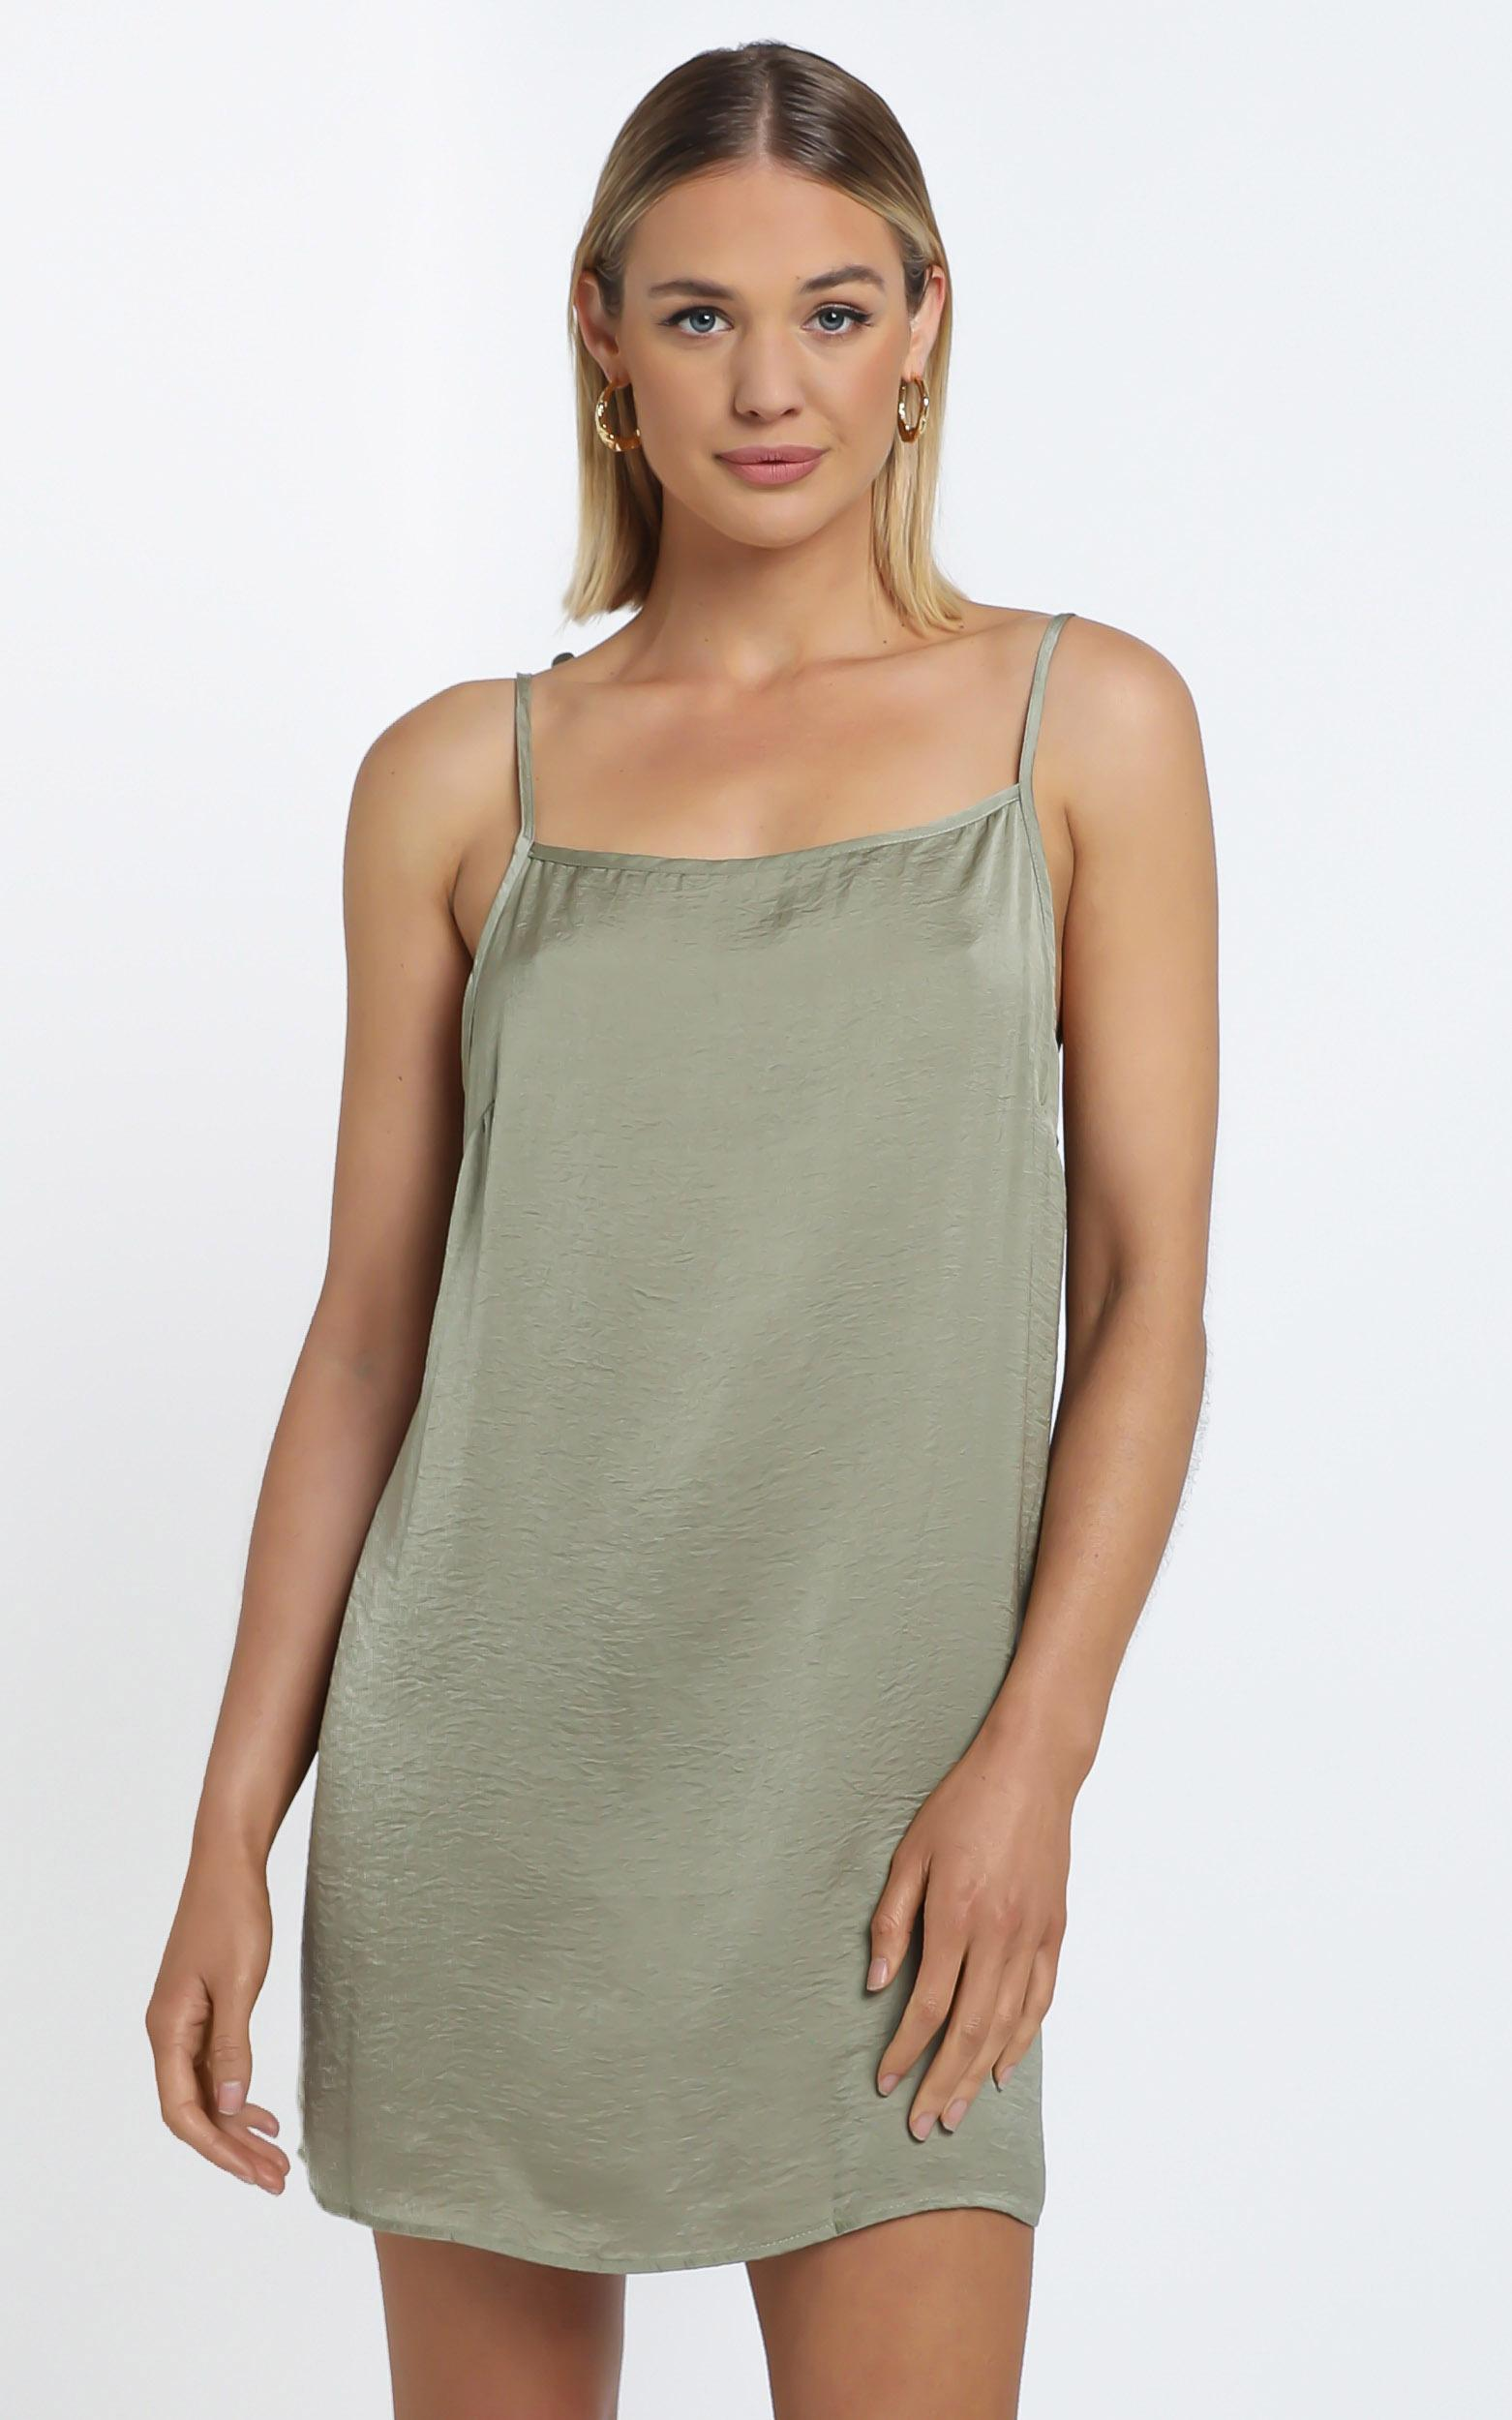 Silky Cami Dress in Khaki - 12 (L), Green, hi-res image number null